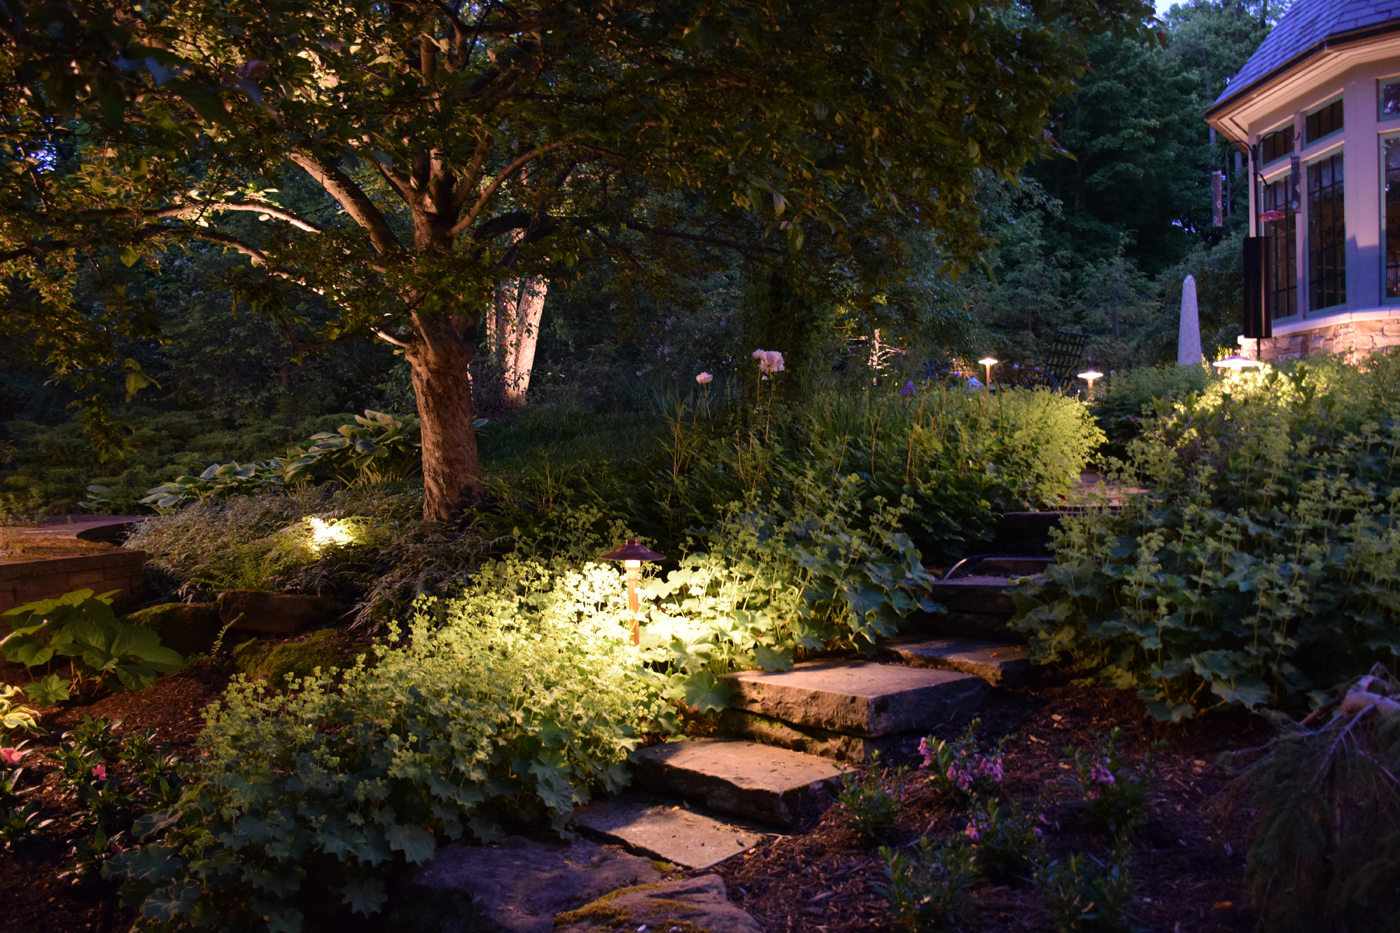 Every Single Property Is Different Every Single Home Or Business Owner Has A Different Goal In Mind Our Goal In Creating The Perfect Landscape Lighting Is